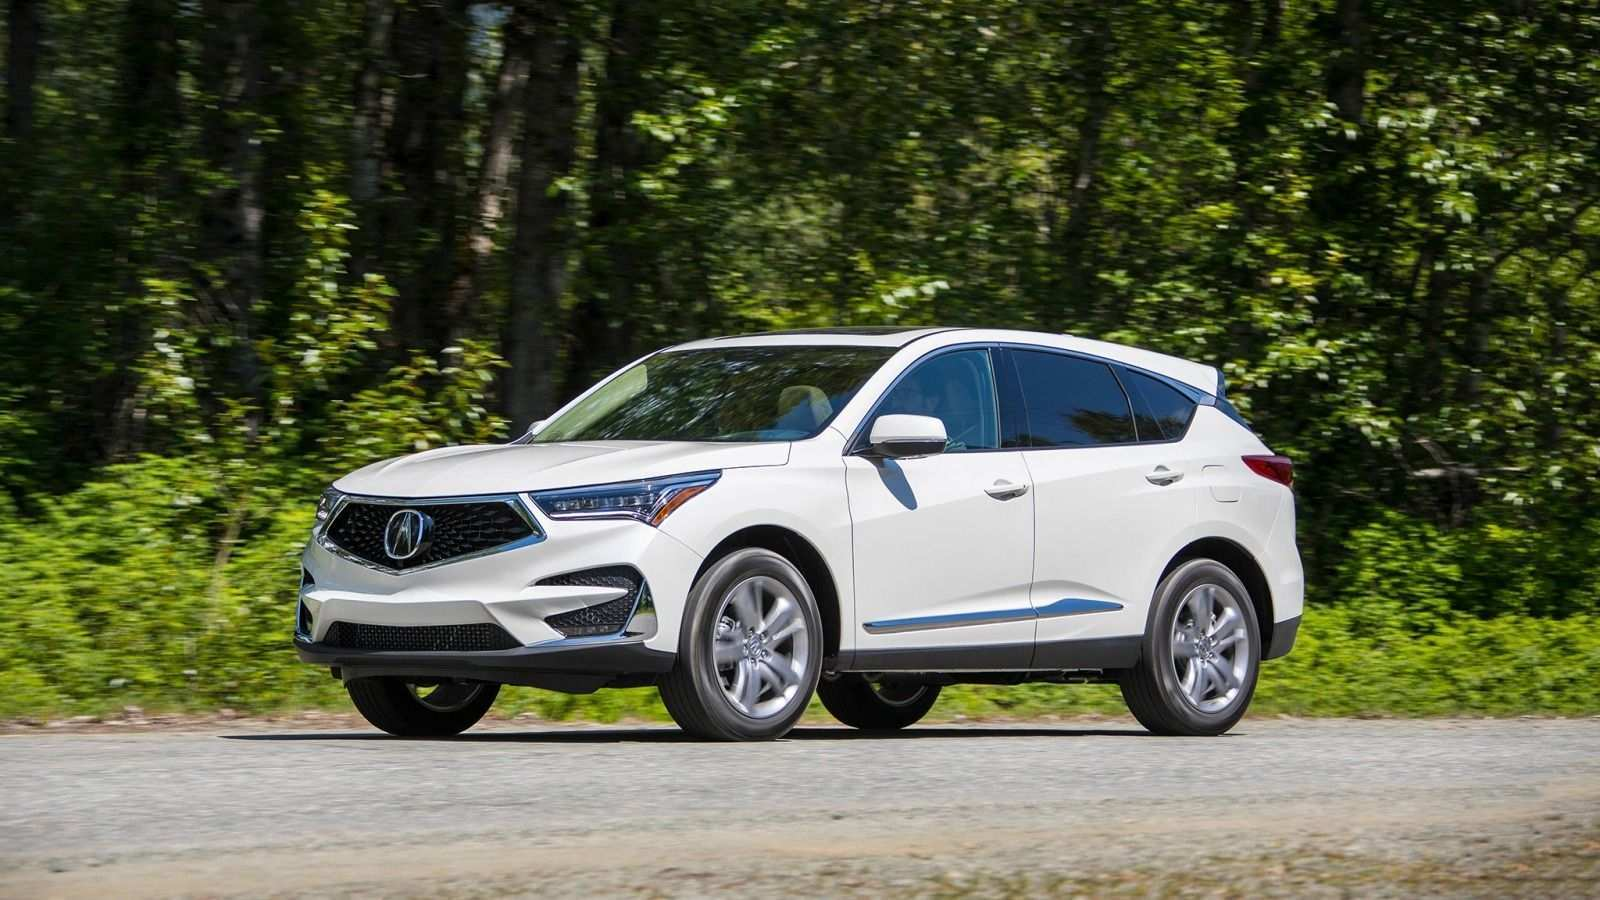 76 Gallery of The Acura Zdx 2019 Price First Drive Exterior by The Acura Zdx 2019 Price First Drive